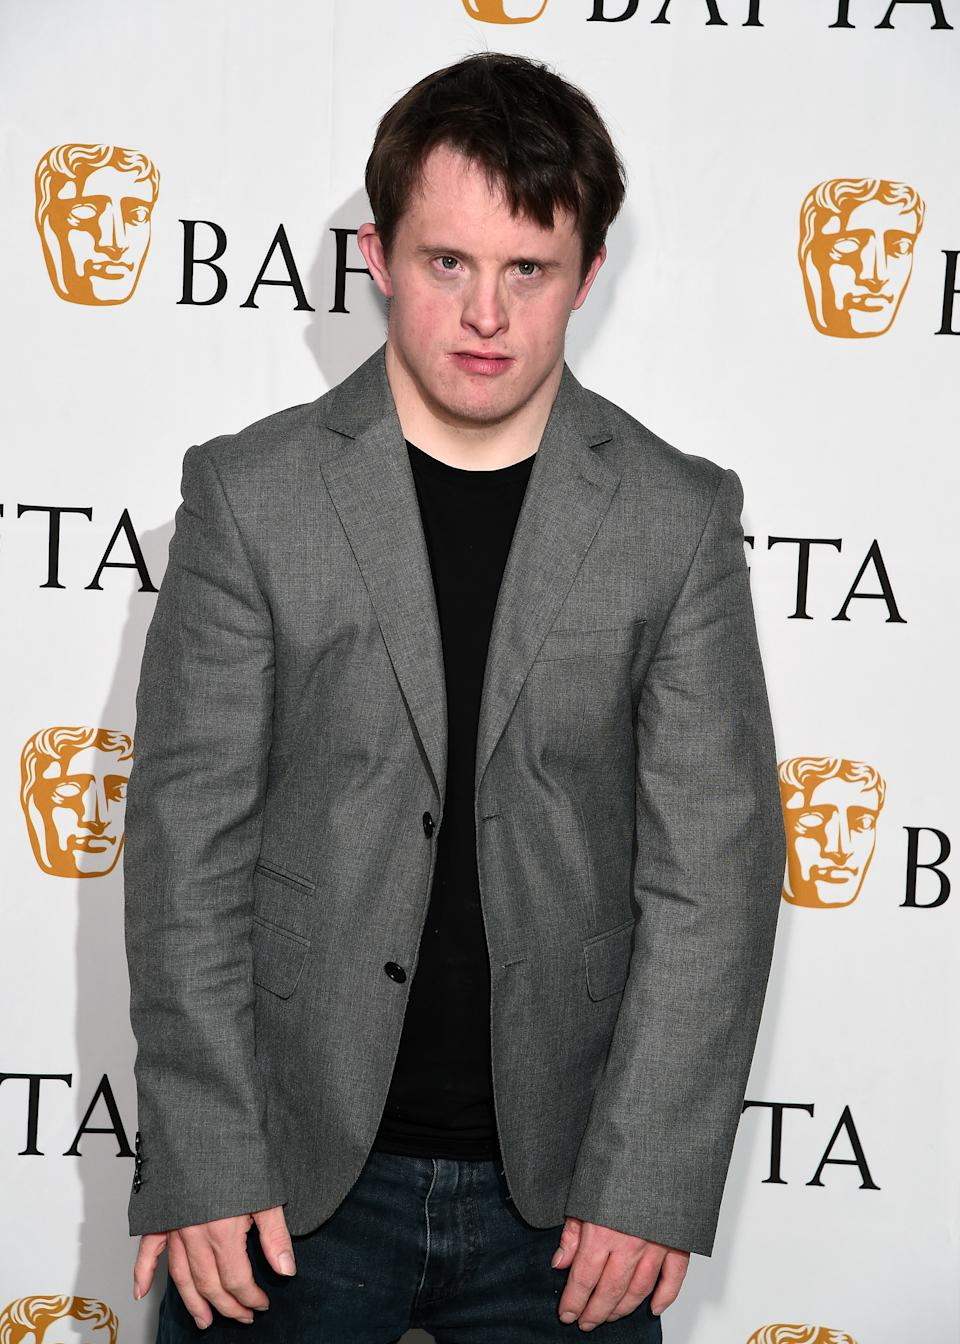 LONDON, ENGLAND - OCTOBER 07: Tommy Jessop attends the launch of the BAFTA Elevate Actors initiative at BAFTA on October 07, 2019 in London, England. (Photo by Eamonn M. McCormack/Getty Images)